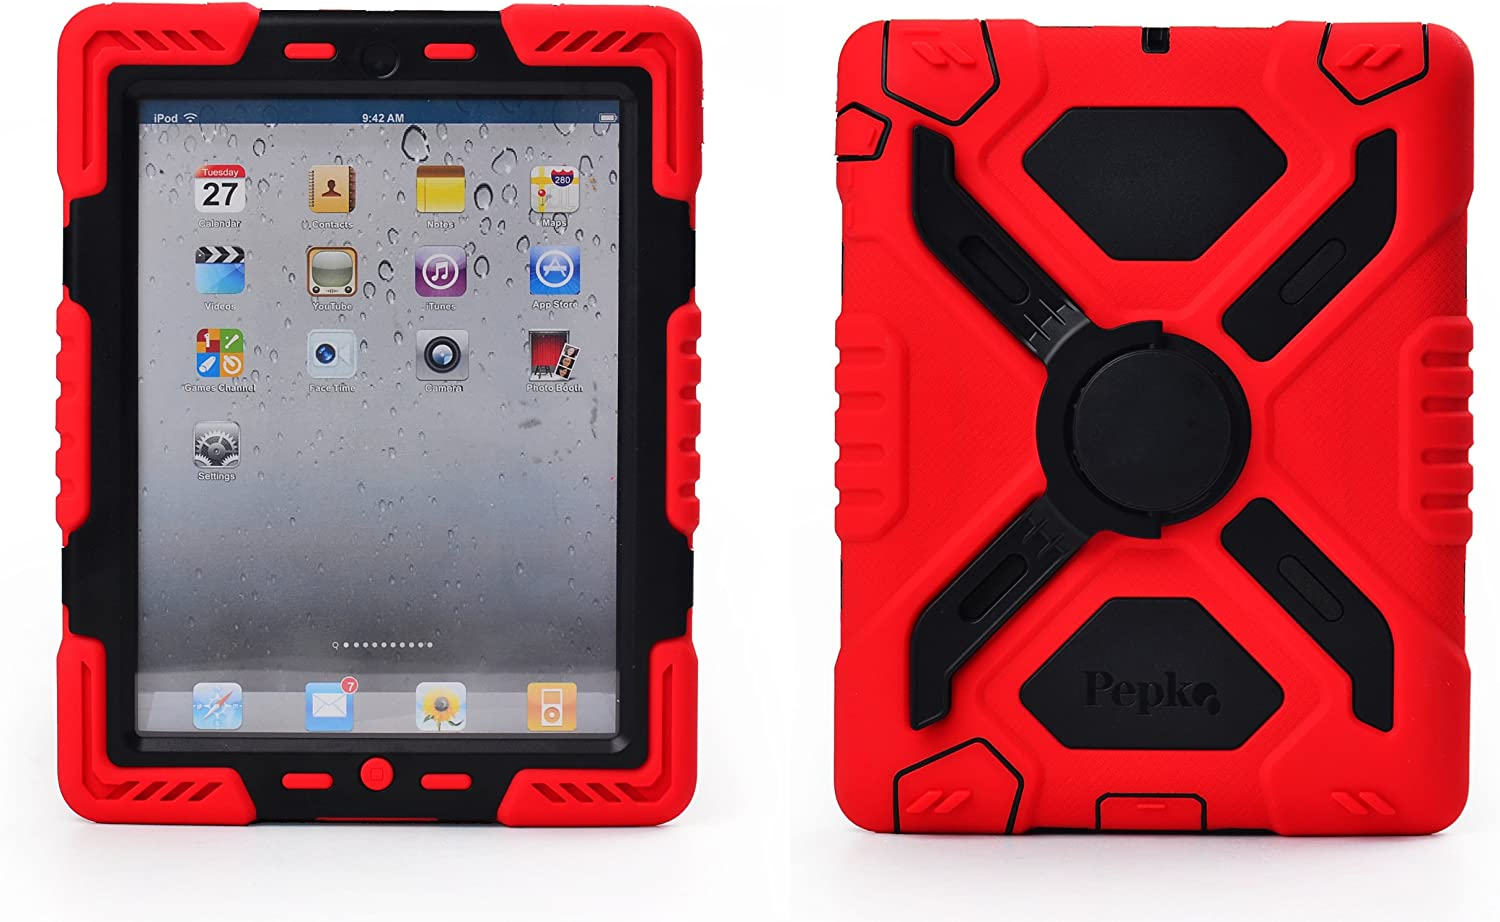 Pepkoo Ipad Mini 1& 2 Case Plastic Kid Proof Extreme Duty Dual Protective Back Cover with Kickstand and Sticker for Ipad Mini 1&2 - Rainproof Sandproof Dust-Proof Shockproof (Red/Black)